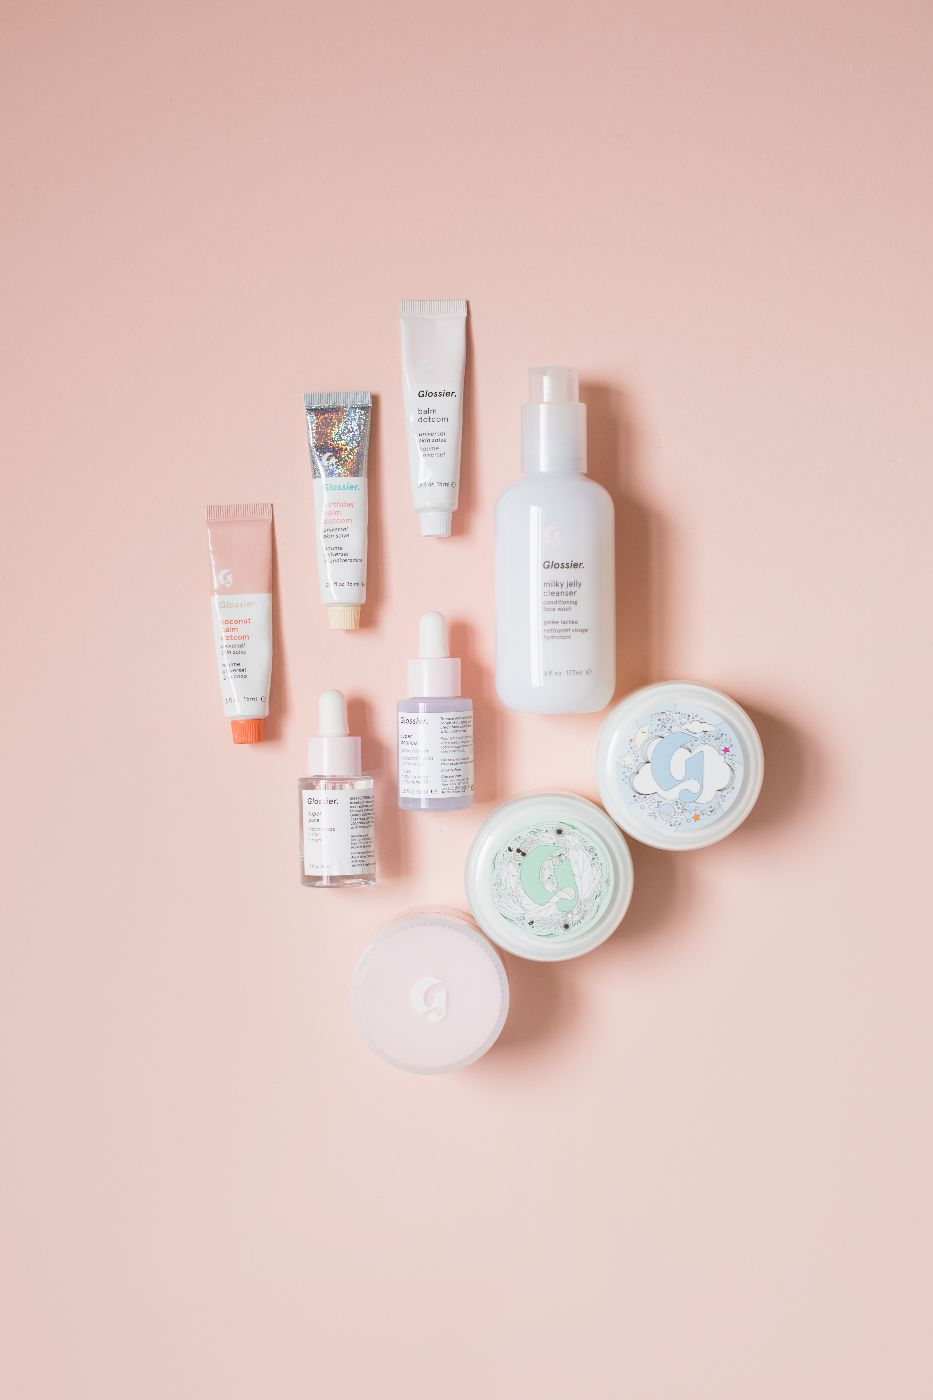 theannaedit-glossier-launches-in-uk-best-worst-products-october-2017-3